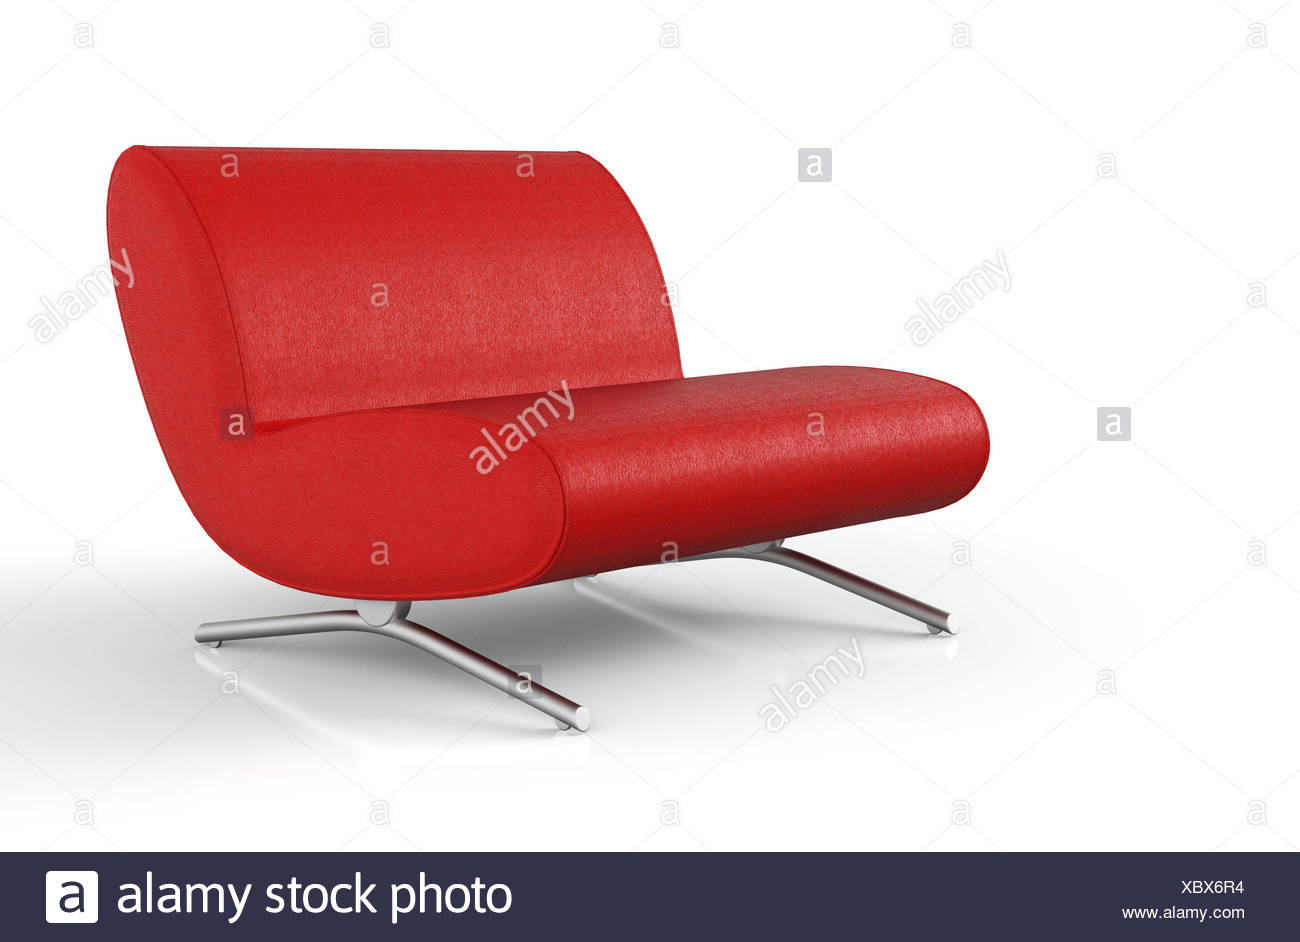 Designer Sessel Rot Red Bear Chairs Stockfotos Red Bear Chairs Bilder Alamy